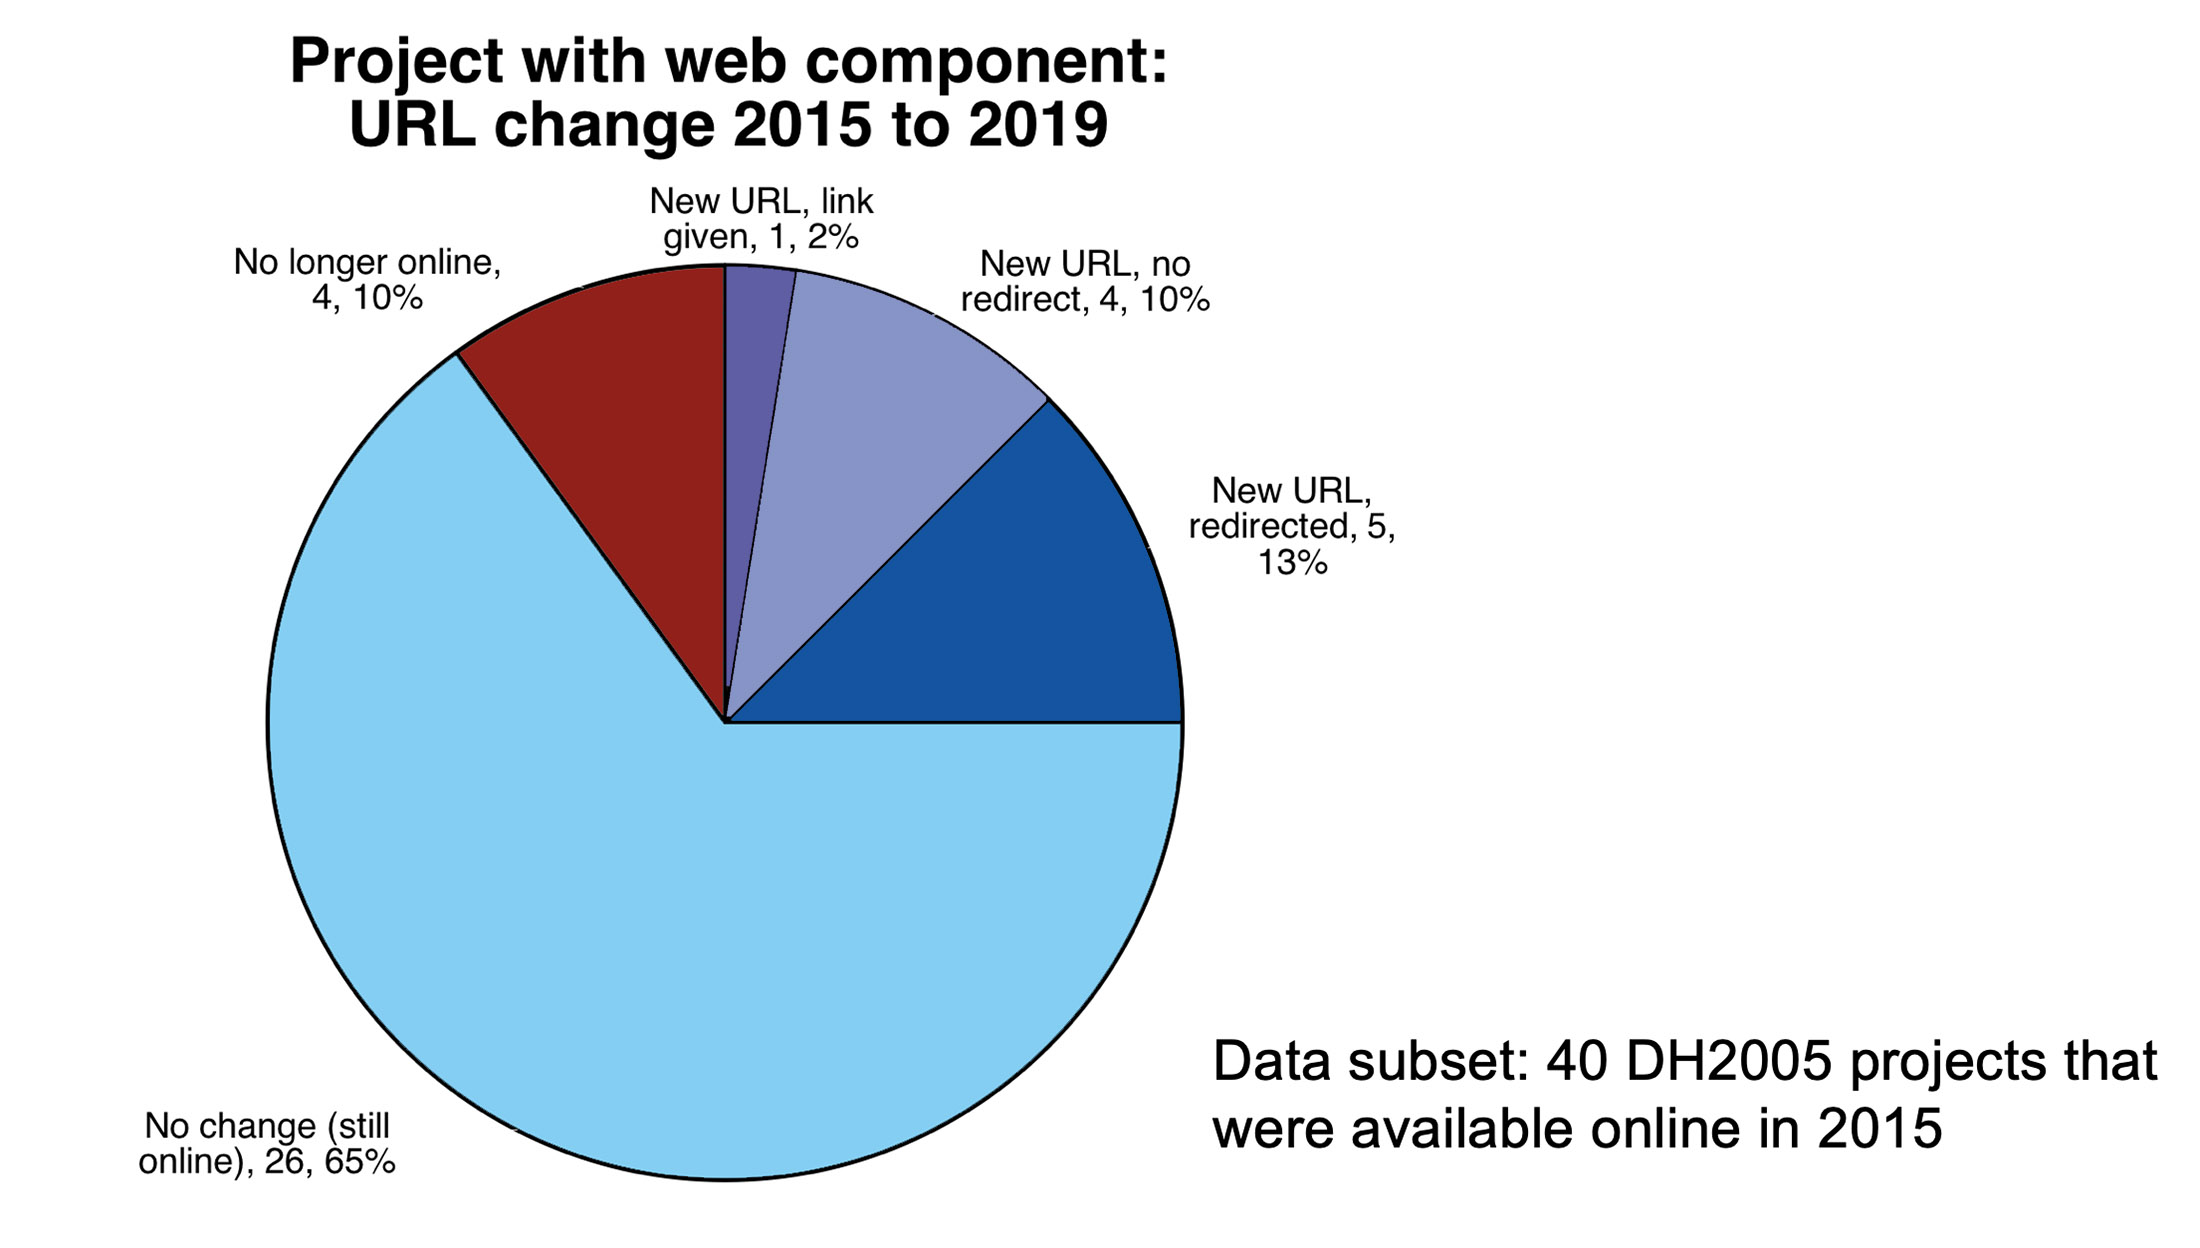 Pie chart of DH 2005 projects with web component, URL change 2015 to 2019